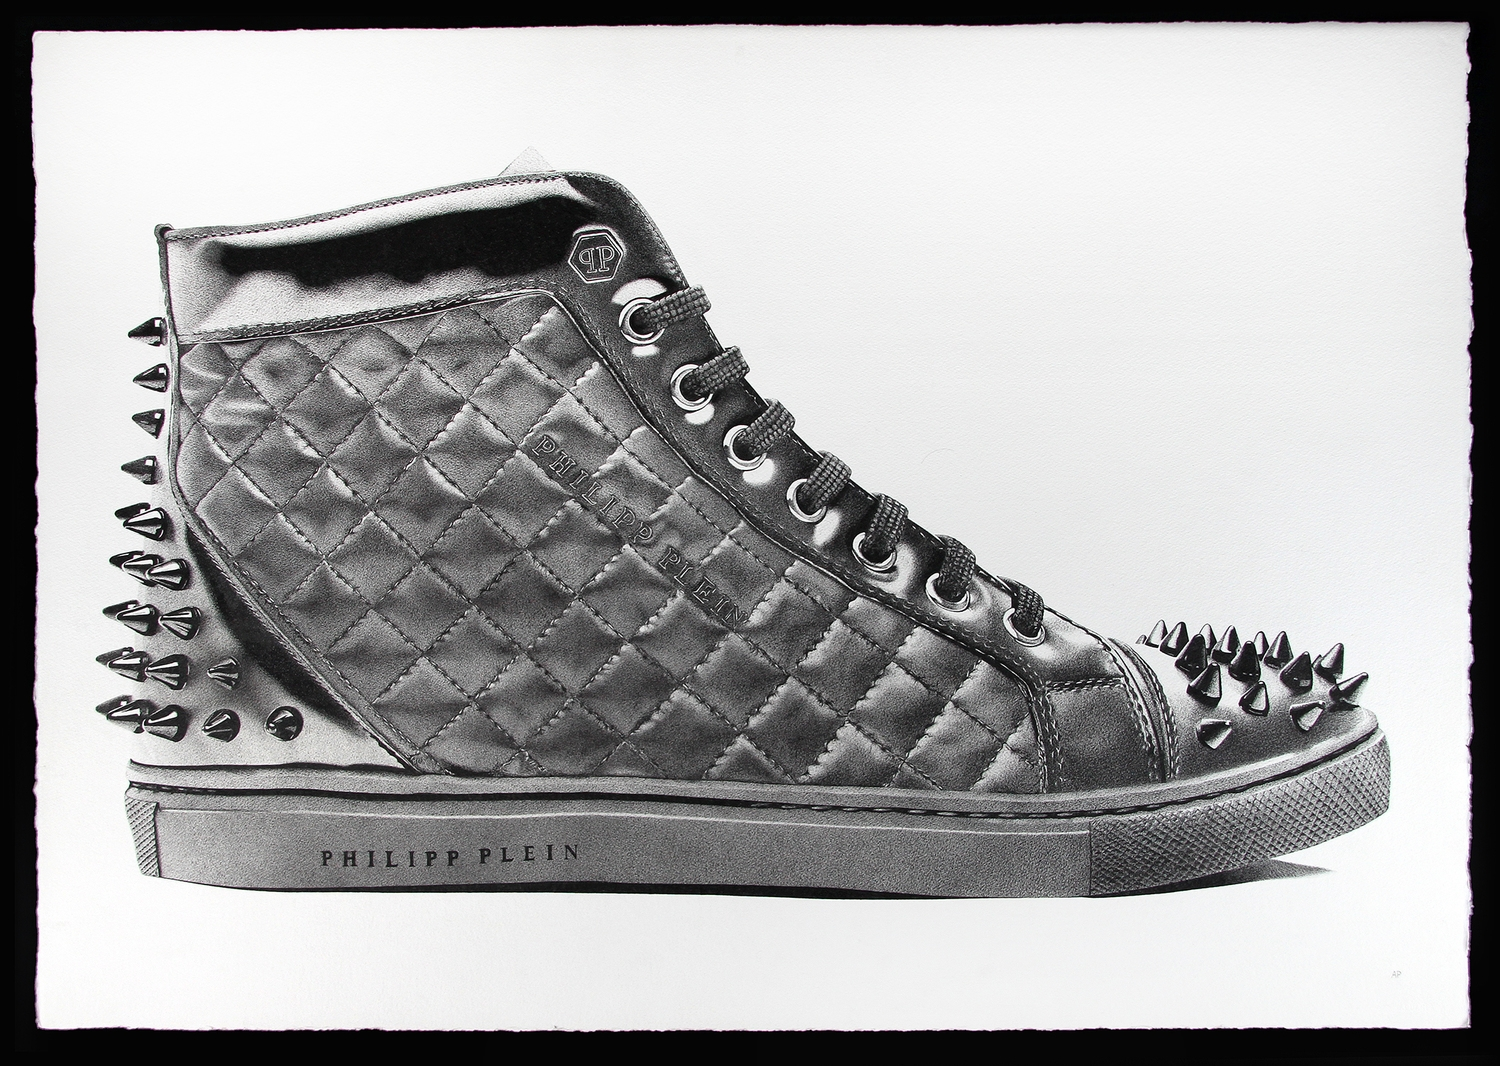 05-Philipp-Plein-High-Top-Sneaker-Alessandro-Paglia-Photo-Like-Black-and-White-Drawings-www-designstack-co